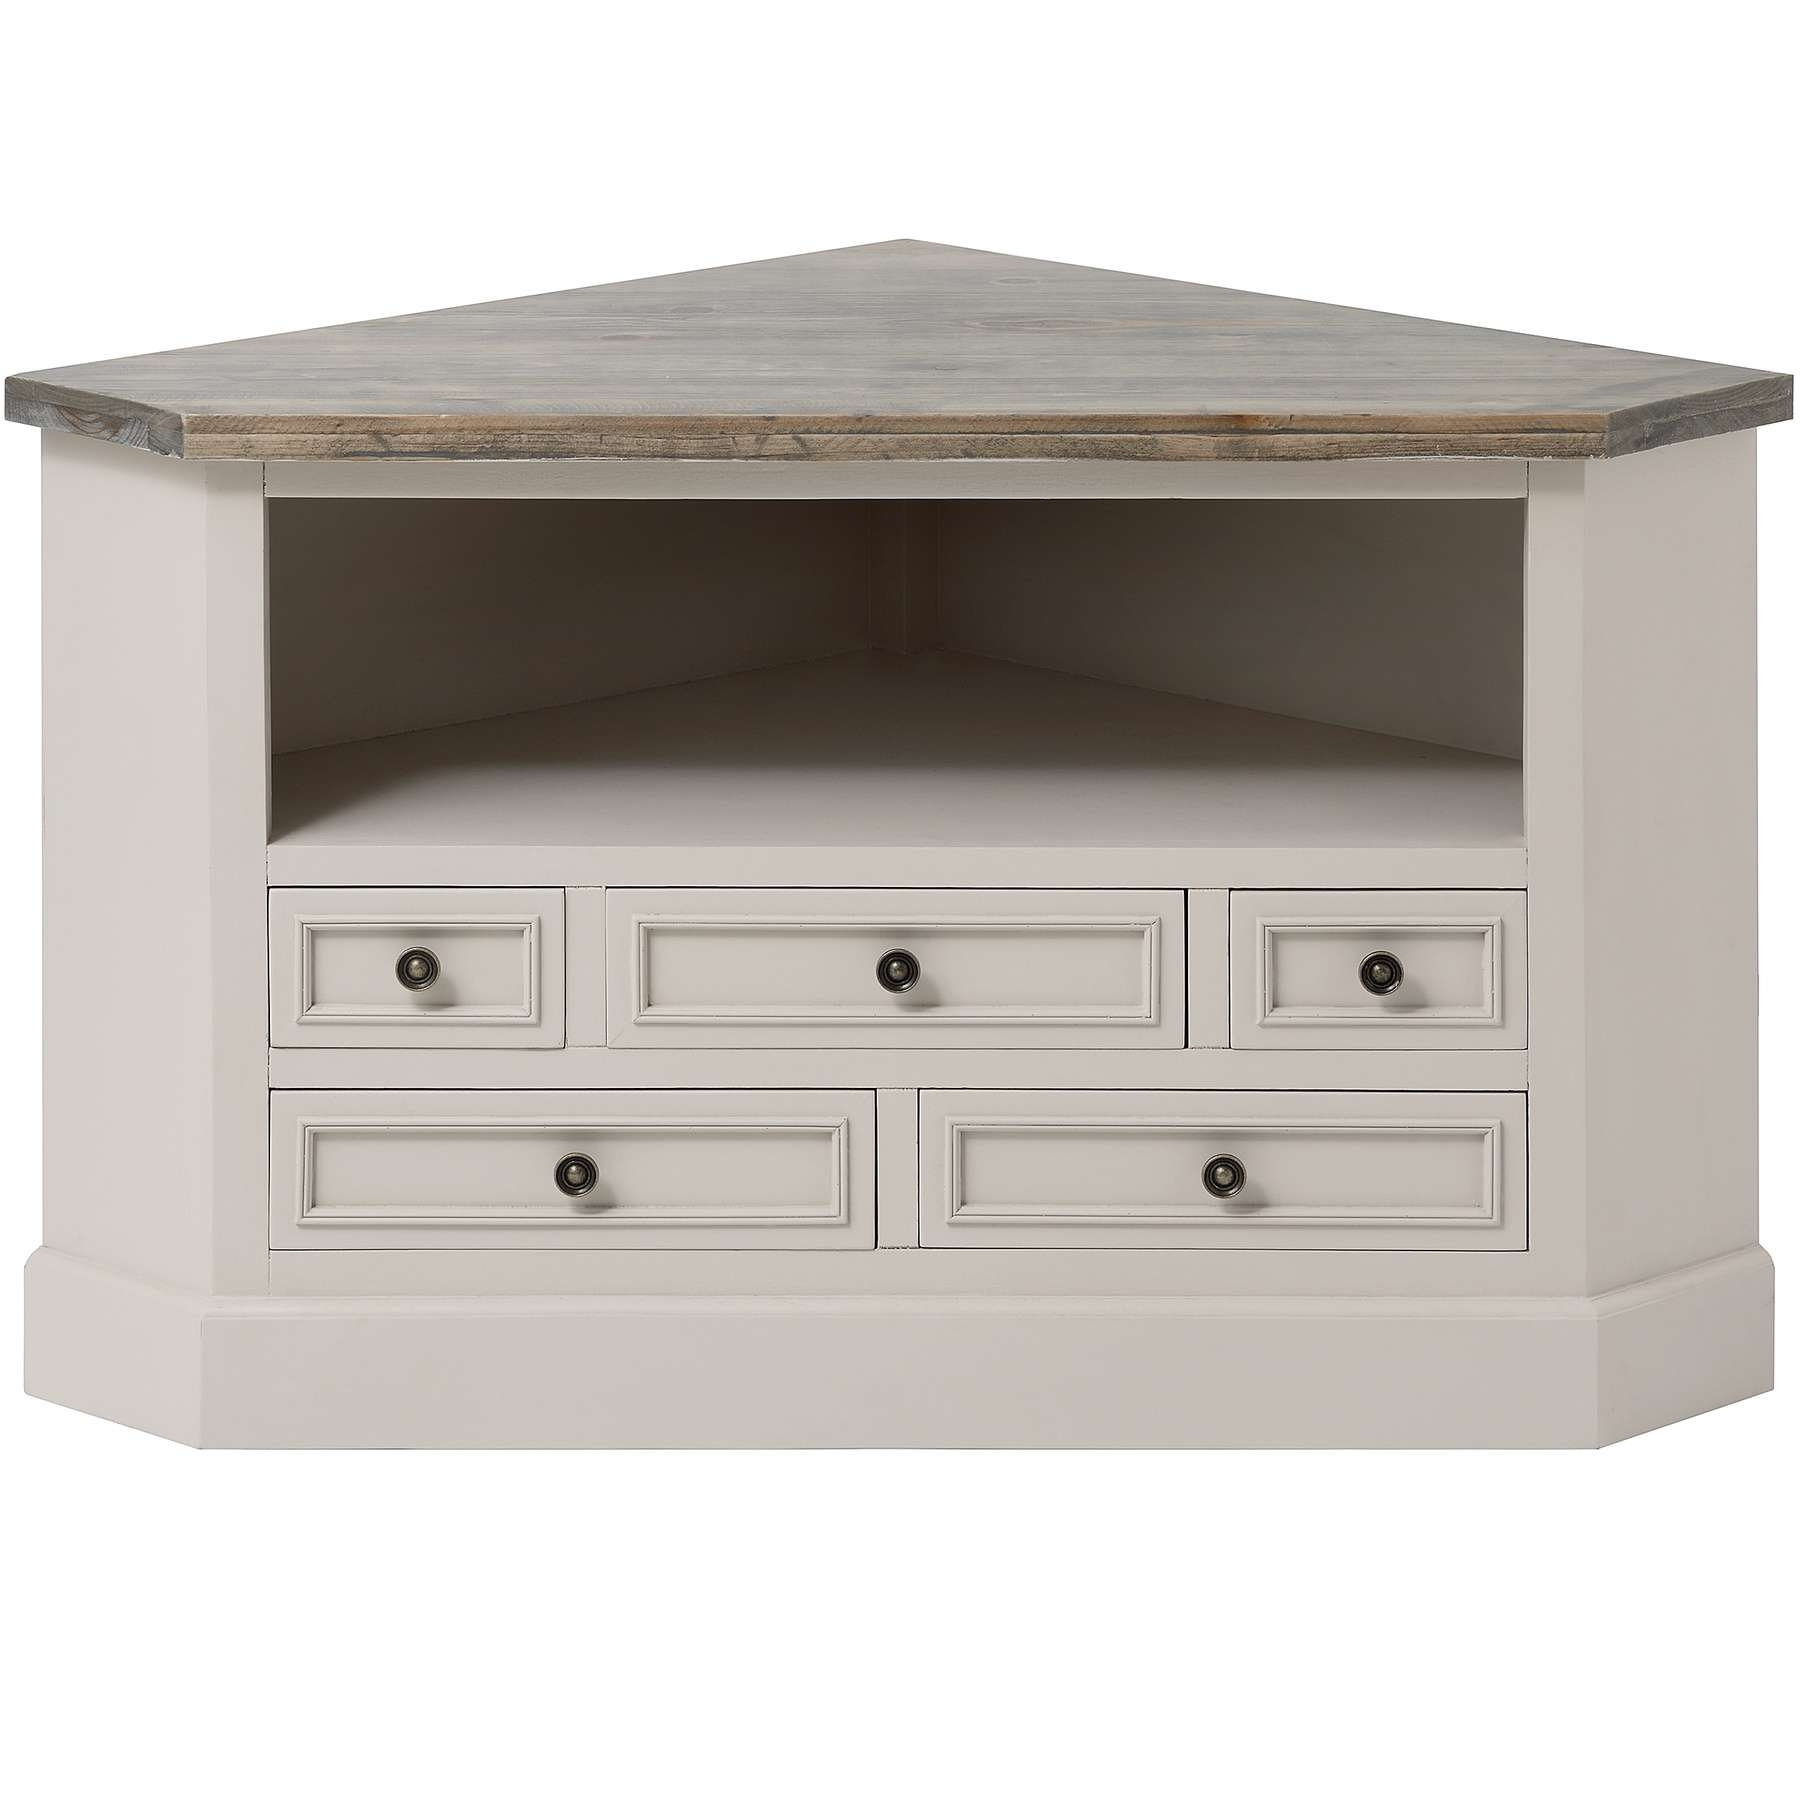 Rustic White Painted Walnut Wood Corner Tv Stand With Drawers Of Regarding White Wood Corner Tv Stands (View 2 of 15)